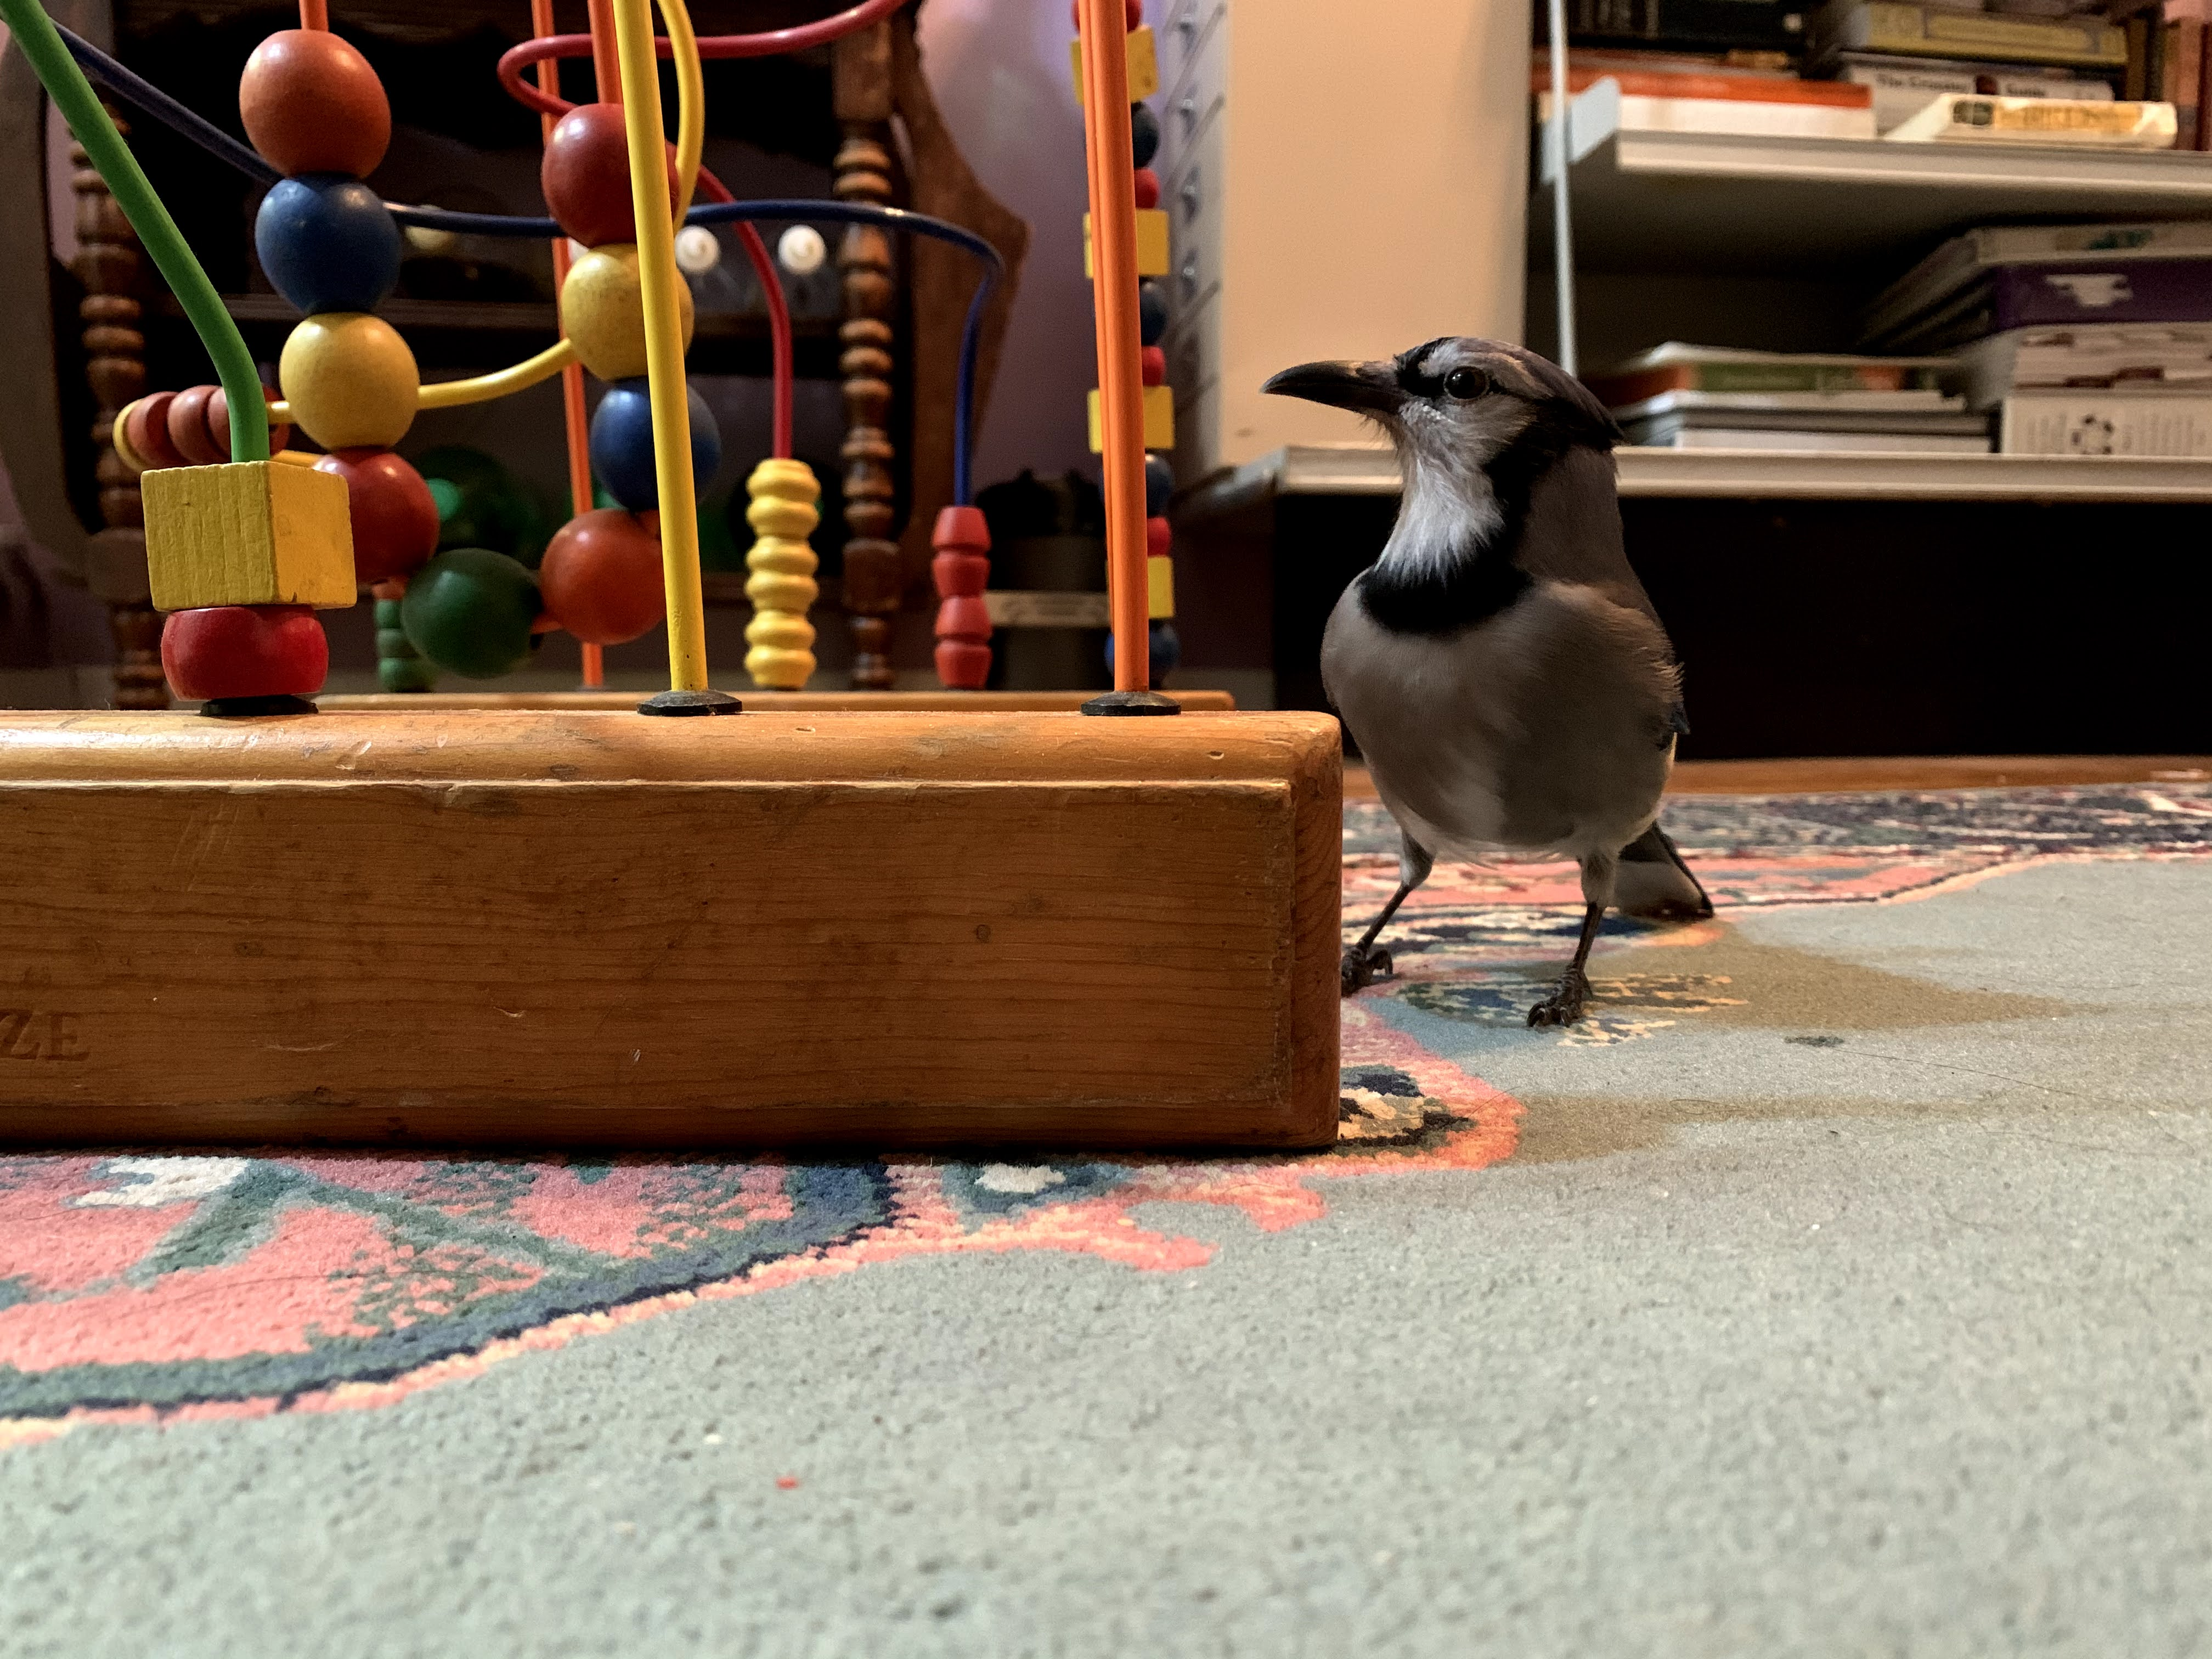 Blue Jay stands next to a child's toy on a blue and pink rug